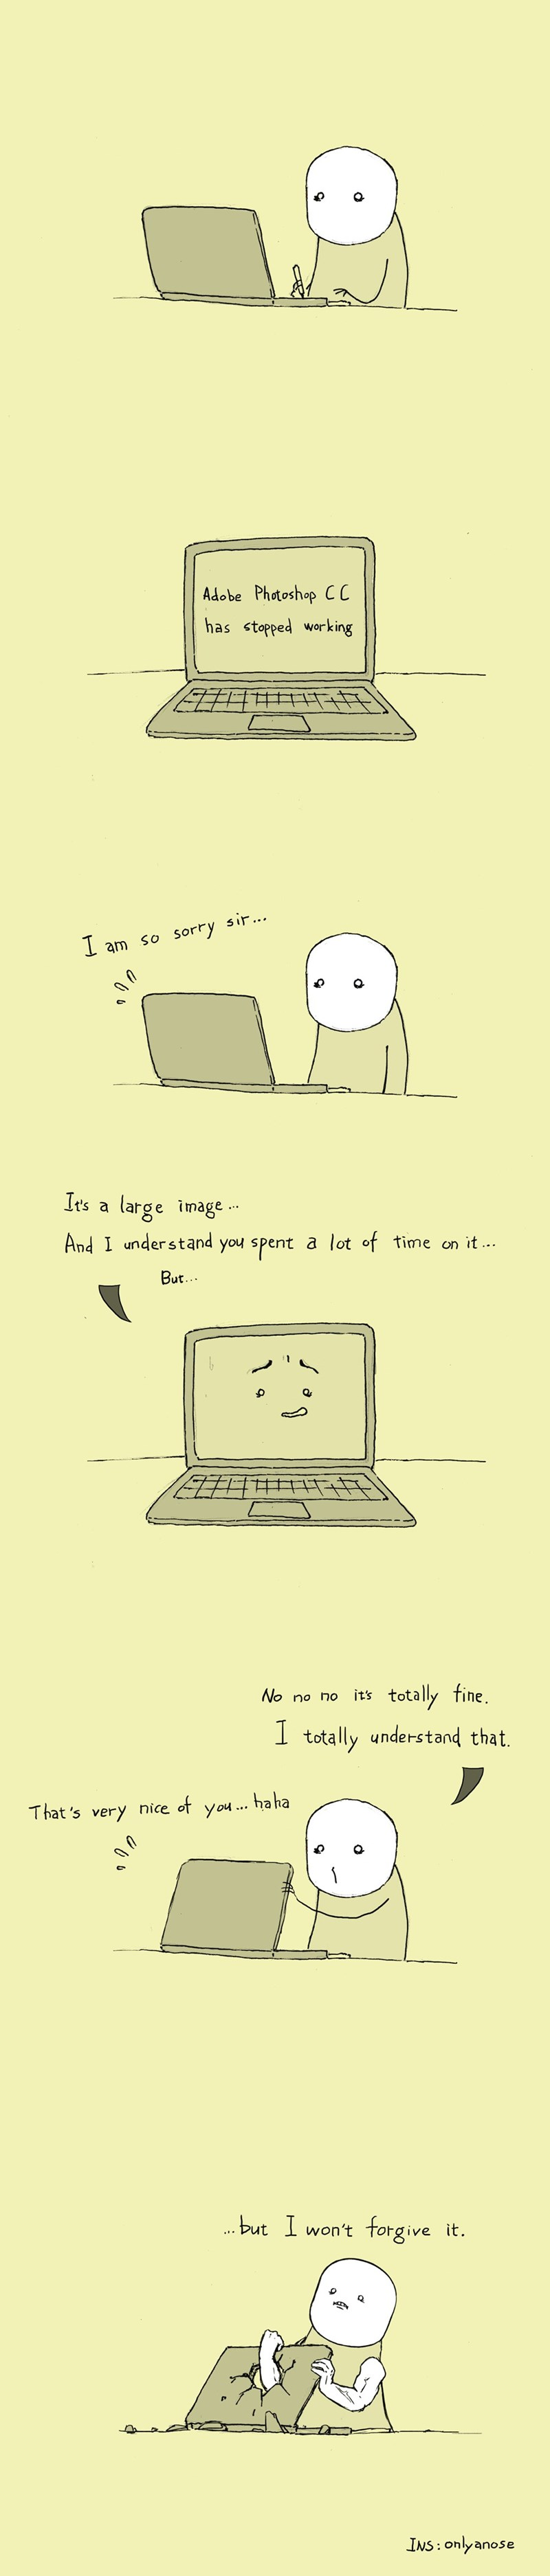 web-comics-adobe-photoshop-frustration-feels